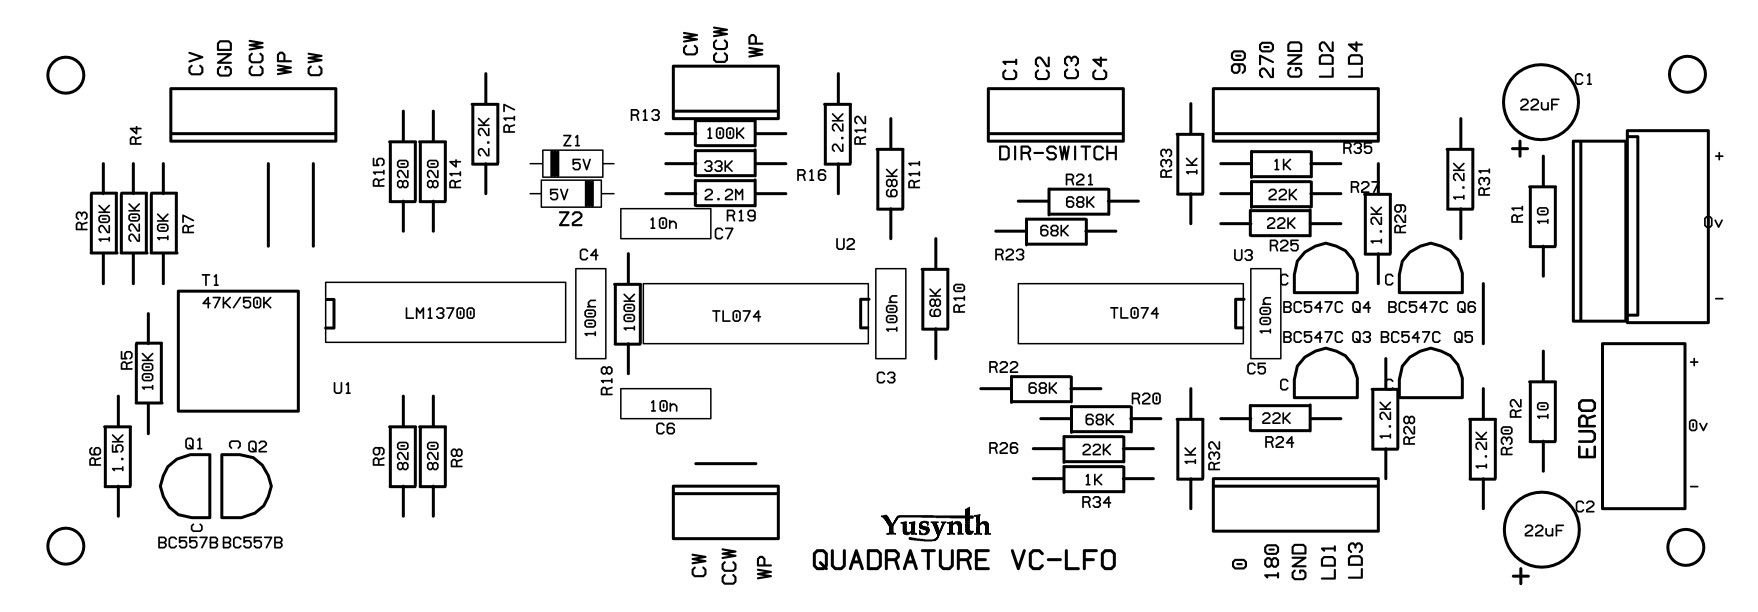 Quadrature Vclfo Quad 2 Circuit Diagram Pcb Design